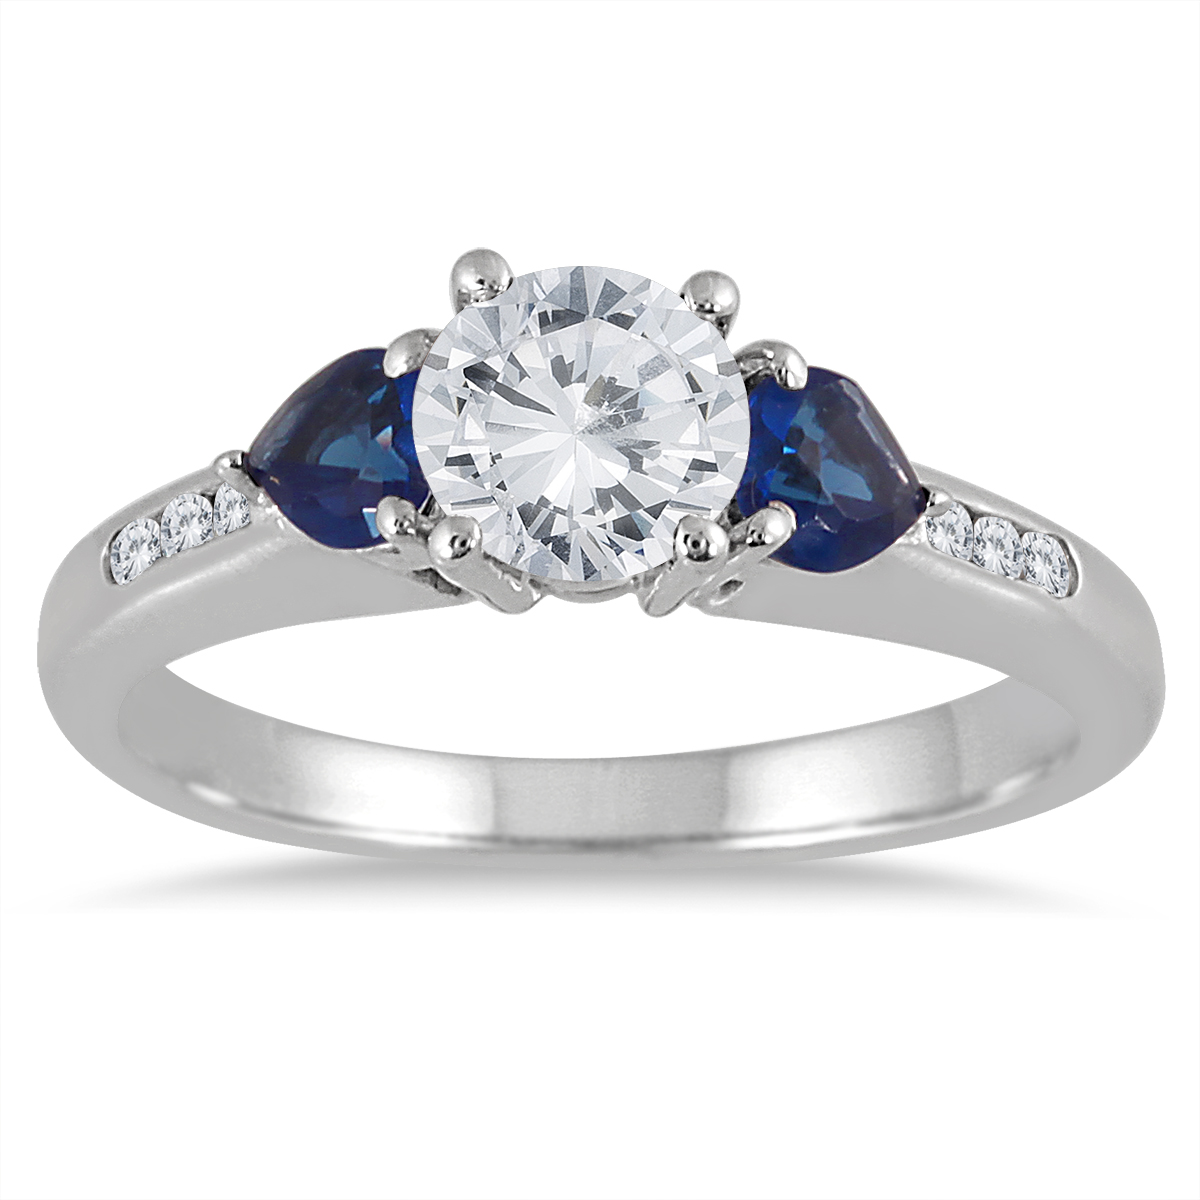 1 Carat Diamond and Sapphire Ring in